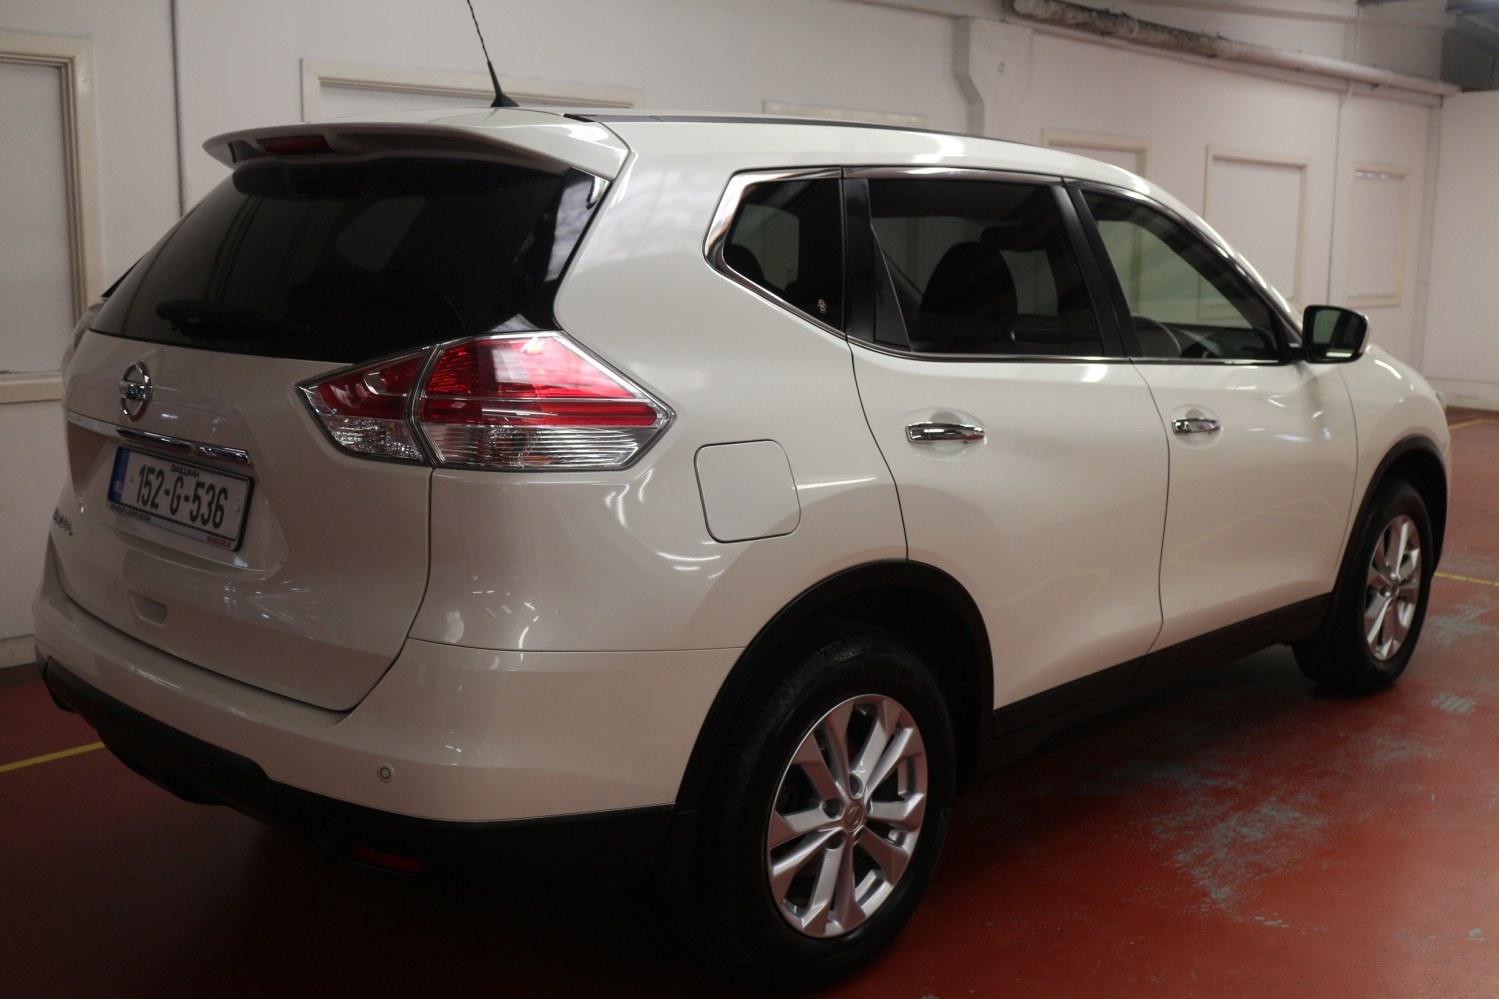 What Is The Trade In Value Of My Car >> Nissan X-Trail 7 Seater Dsl 1.6 Xtrail SV Model | Windsor Galway Nissan